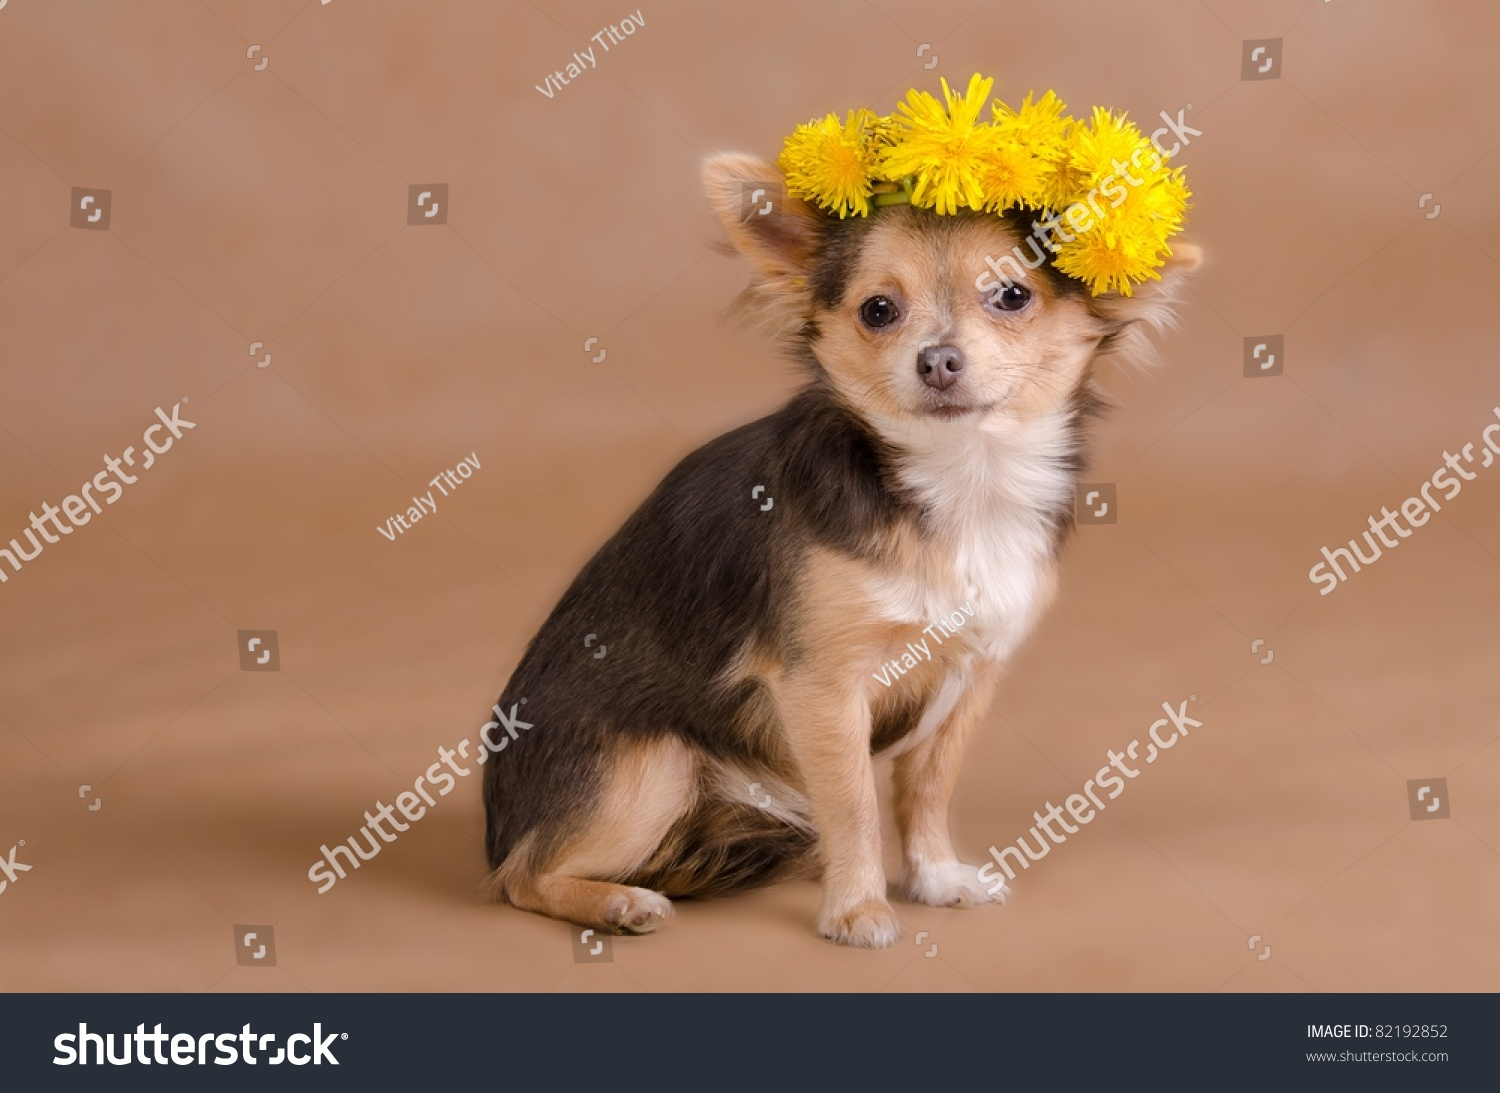 Portrait of a chihuahua puppy wearing wreath of yellow flowers, studio shot #82192852